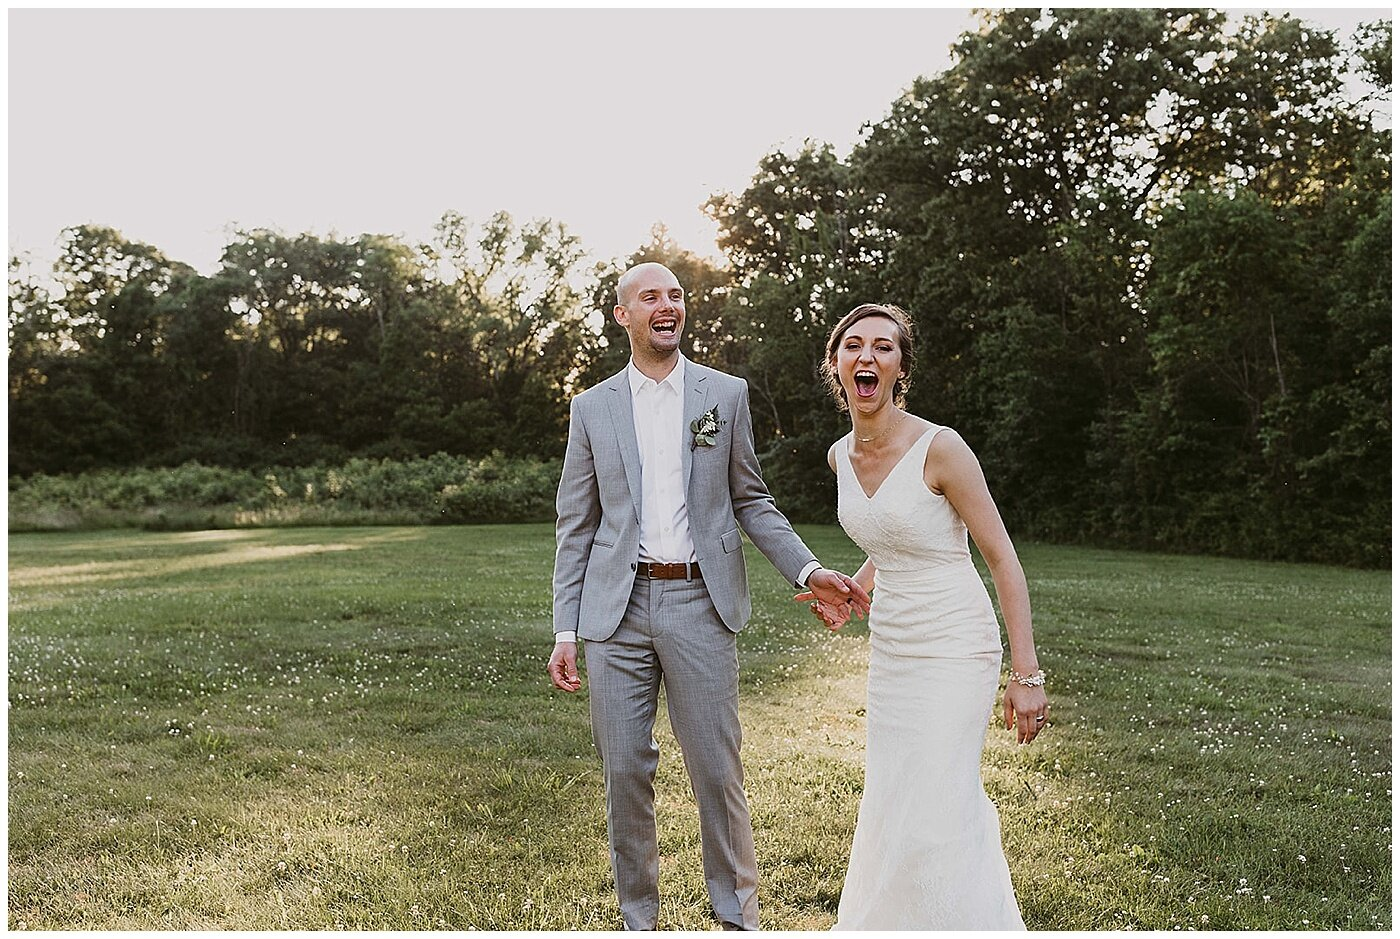 Matt+Katie_WEDDING_MJPHOTO2019-736_websize.jpg